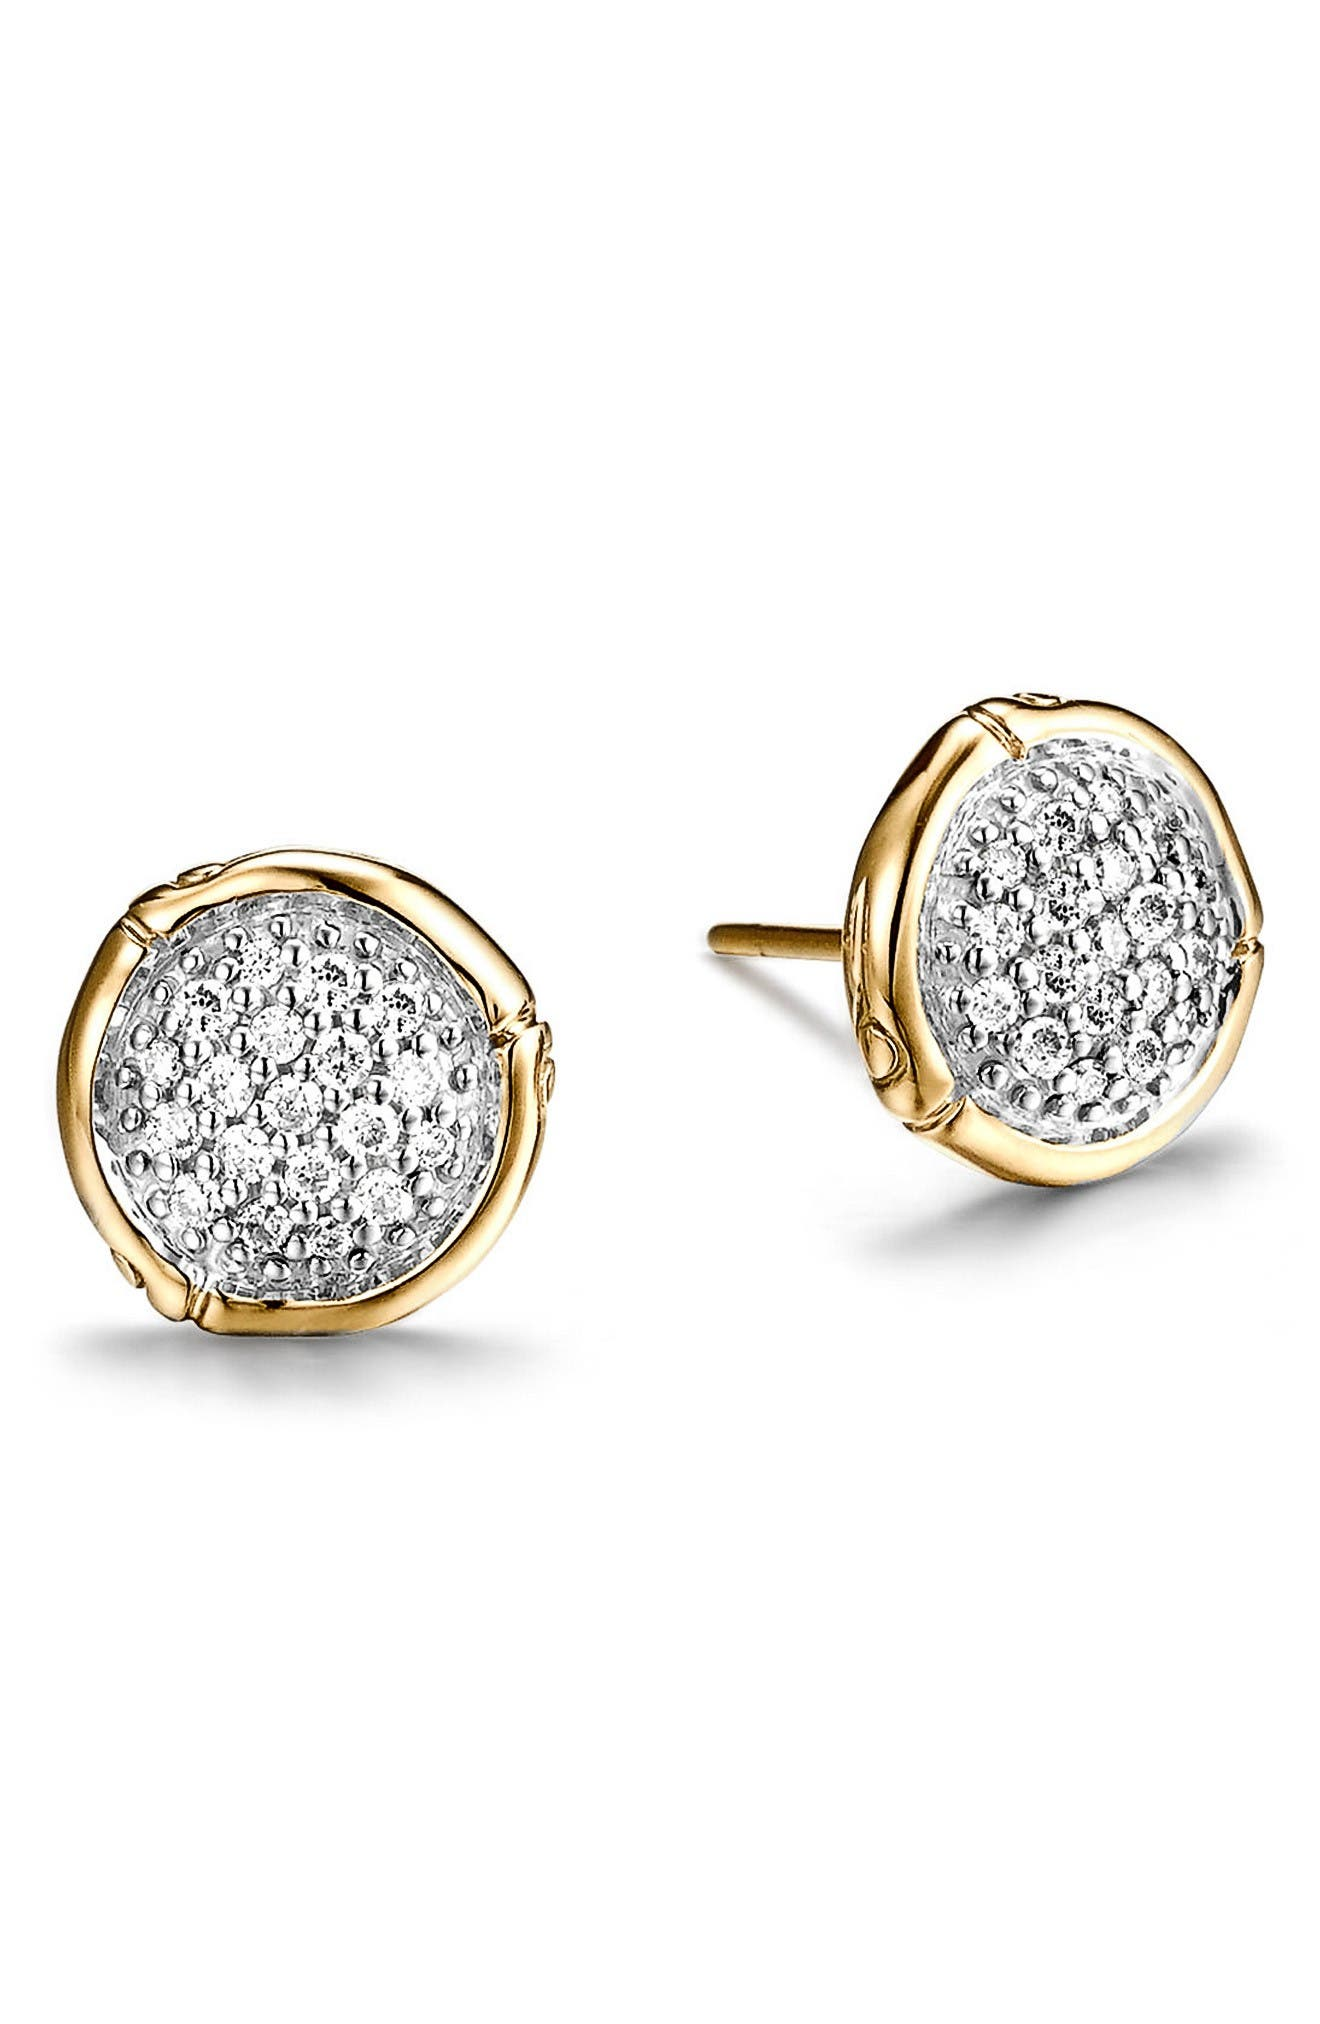 Bamboo Diamond & 18k Gold Stud Earrings,                         Main,                         color, Gold